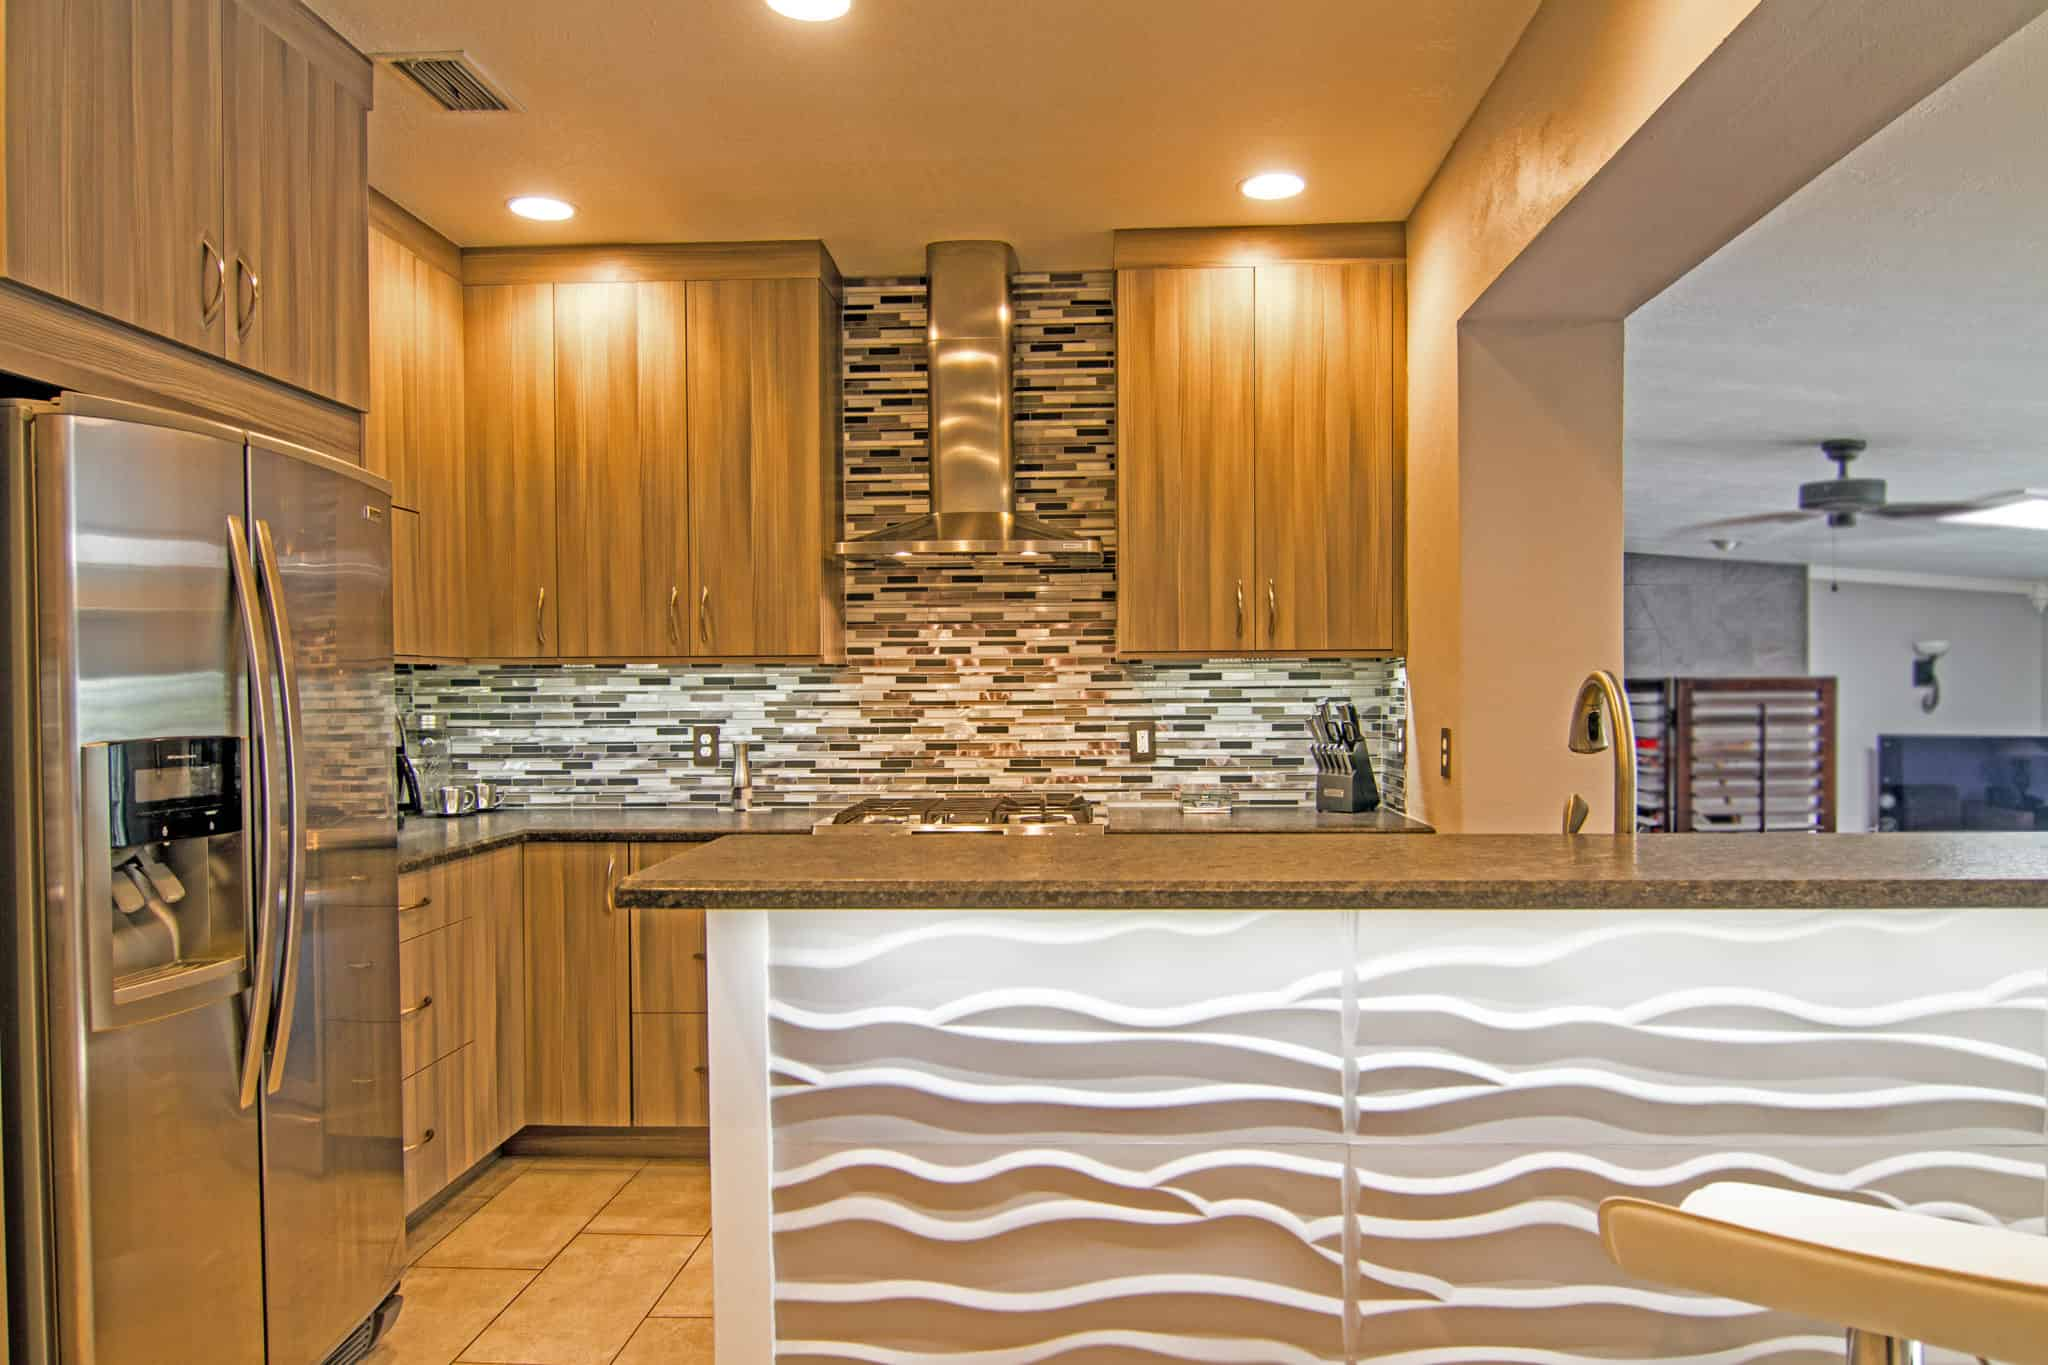 Kitchen island with wave pattern